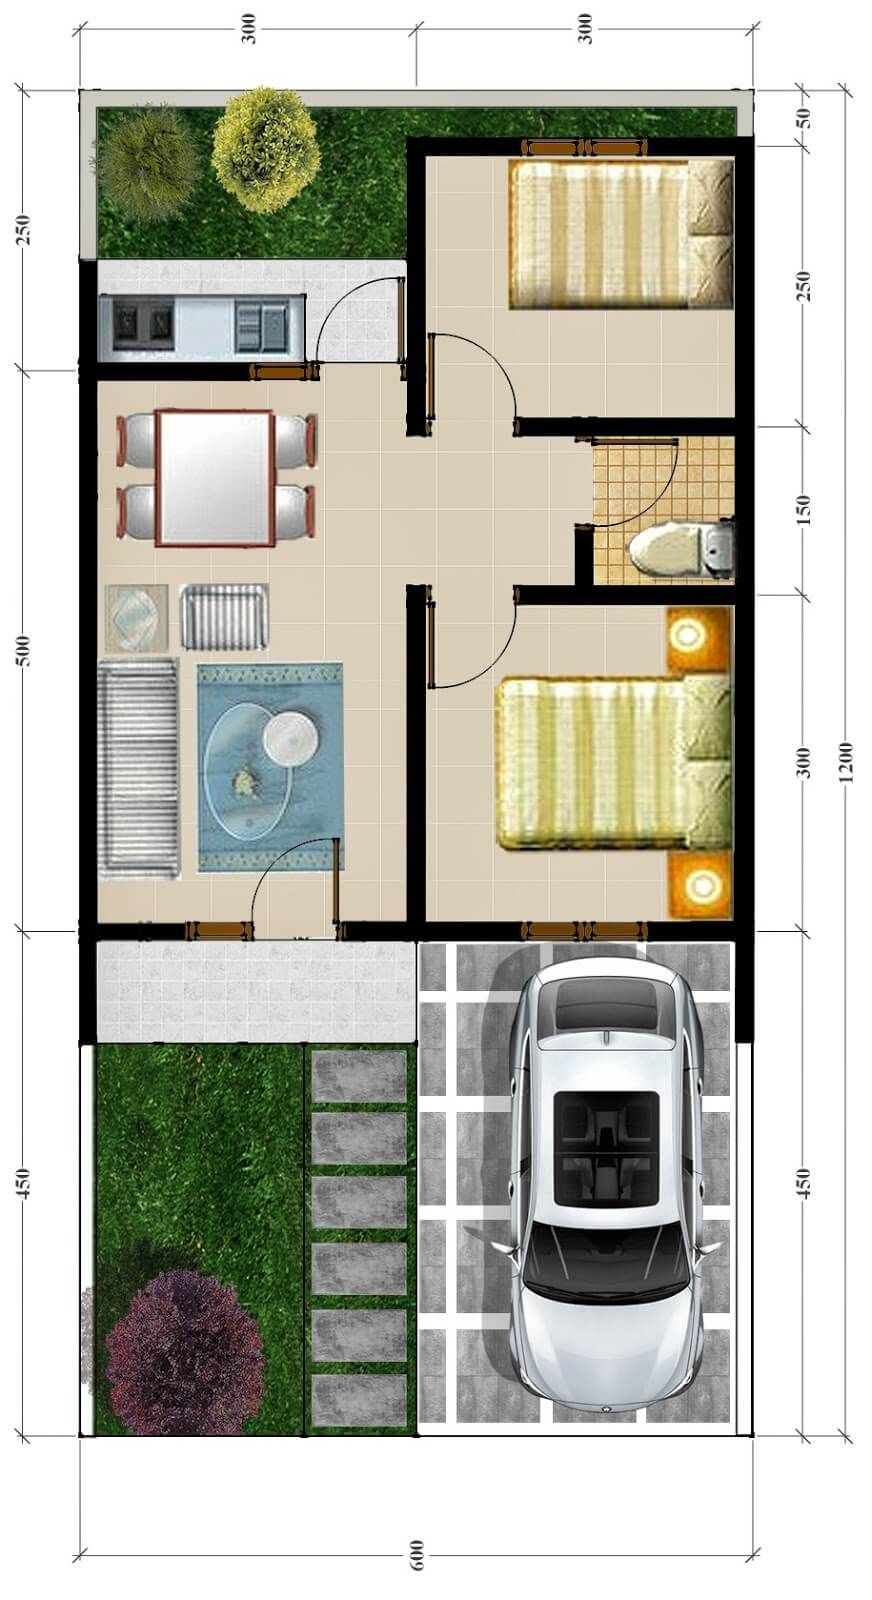 Amazing Beautiful House Plans With All Dimensions Engineering Discoveries In 2020 Beautiful House Plans House Plans Small House Plans